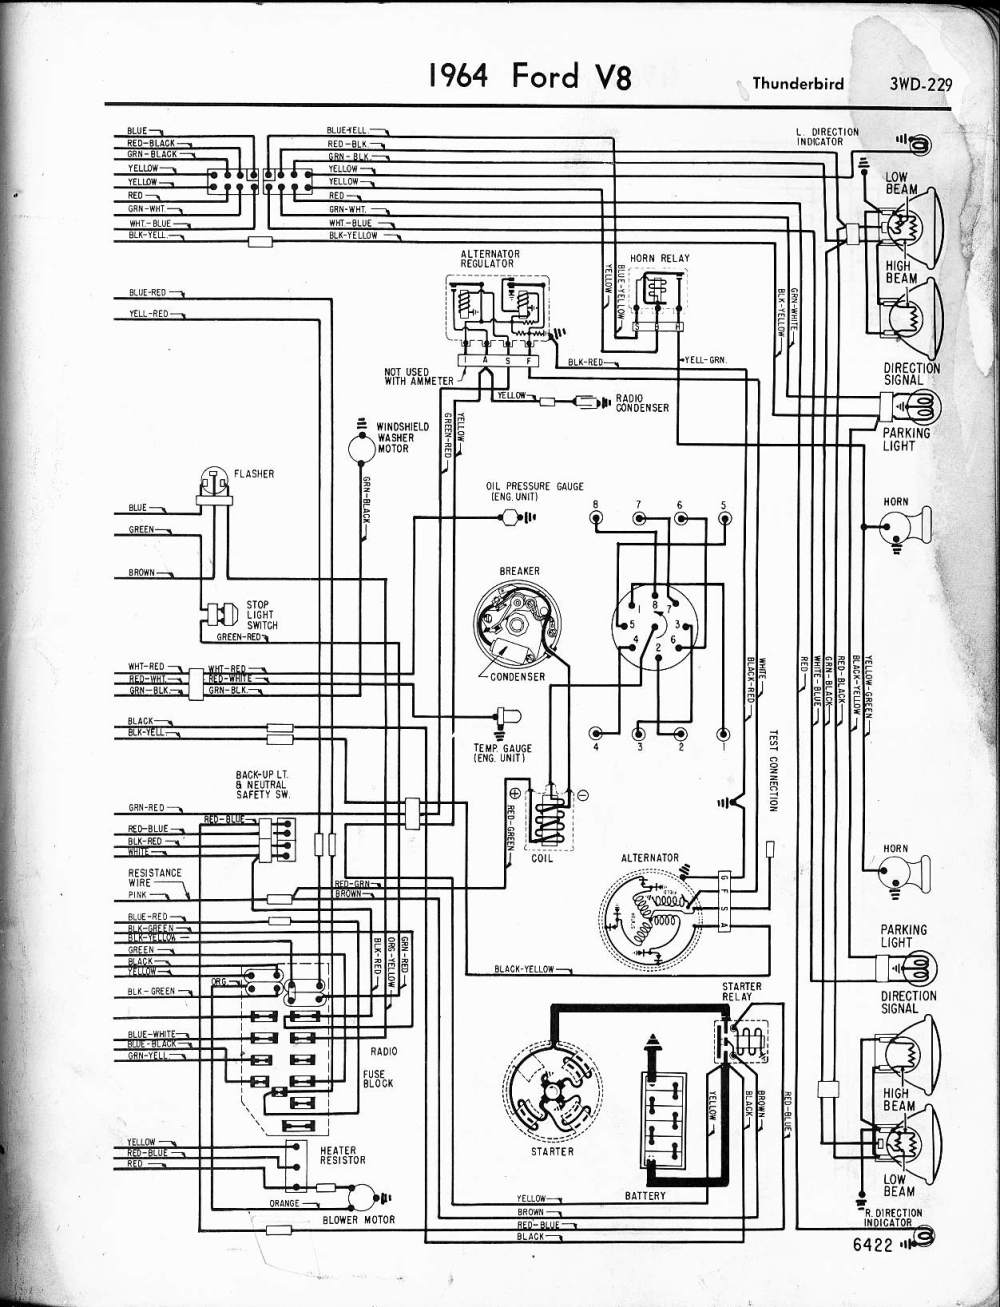 medium resolution of 1964 freightliner wiring diagram wiring diagram inside1964 freightliner wiring diagram wiring diagram expert 1964 freightliner wiring